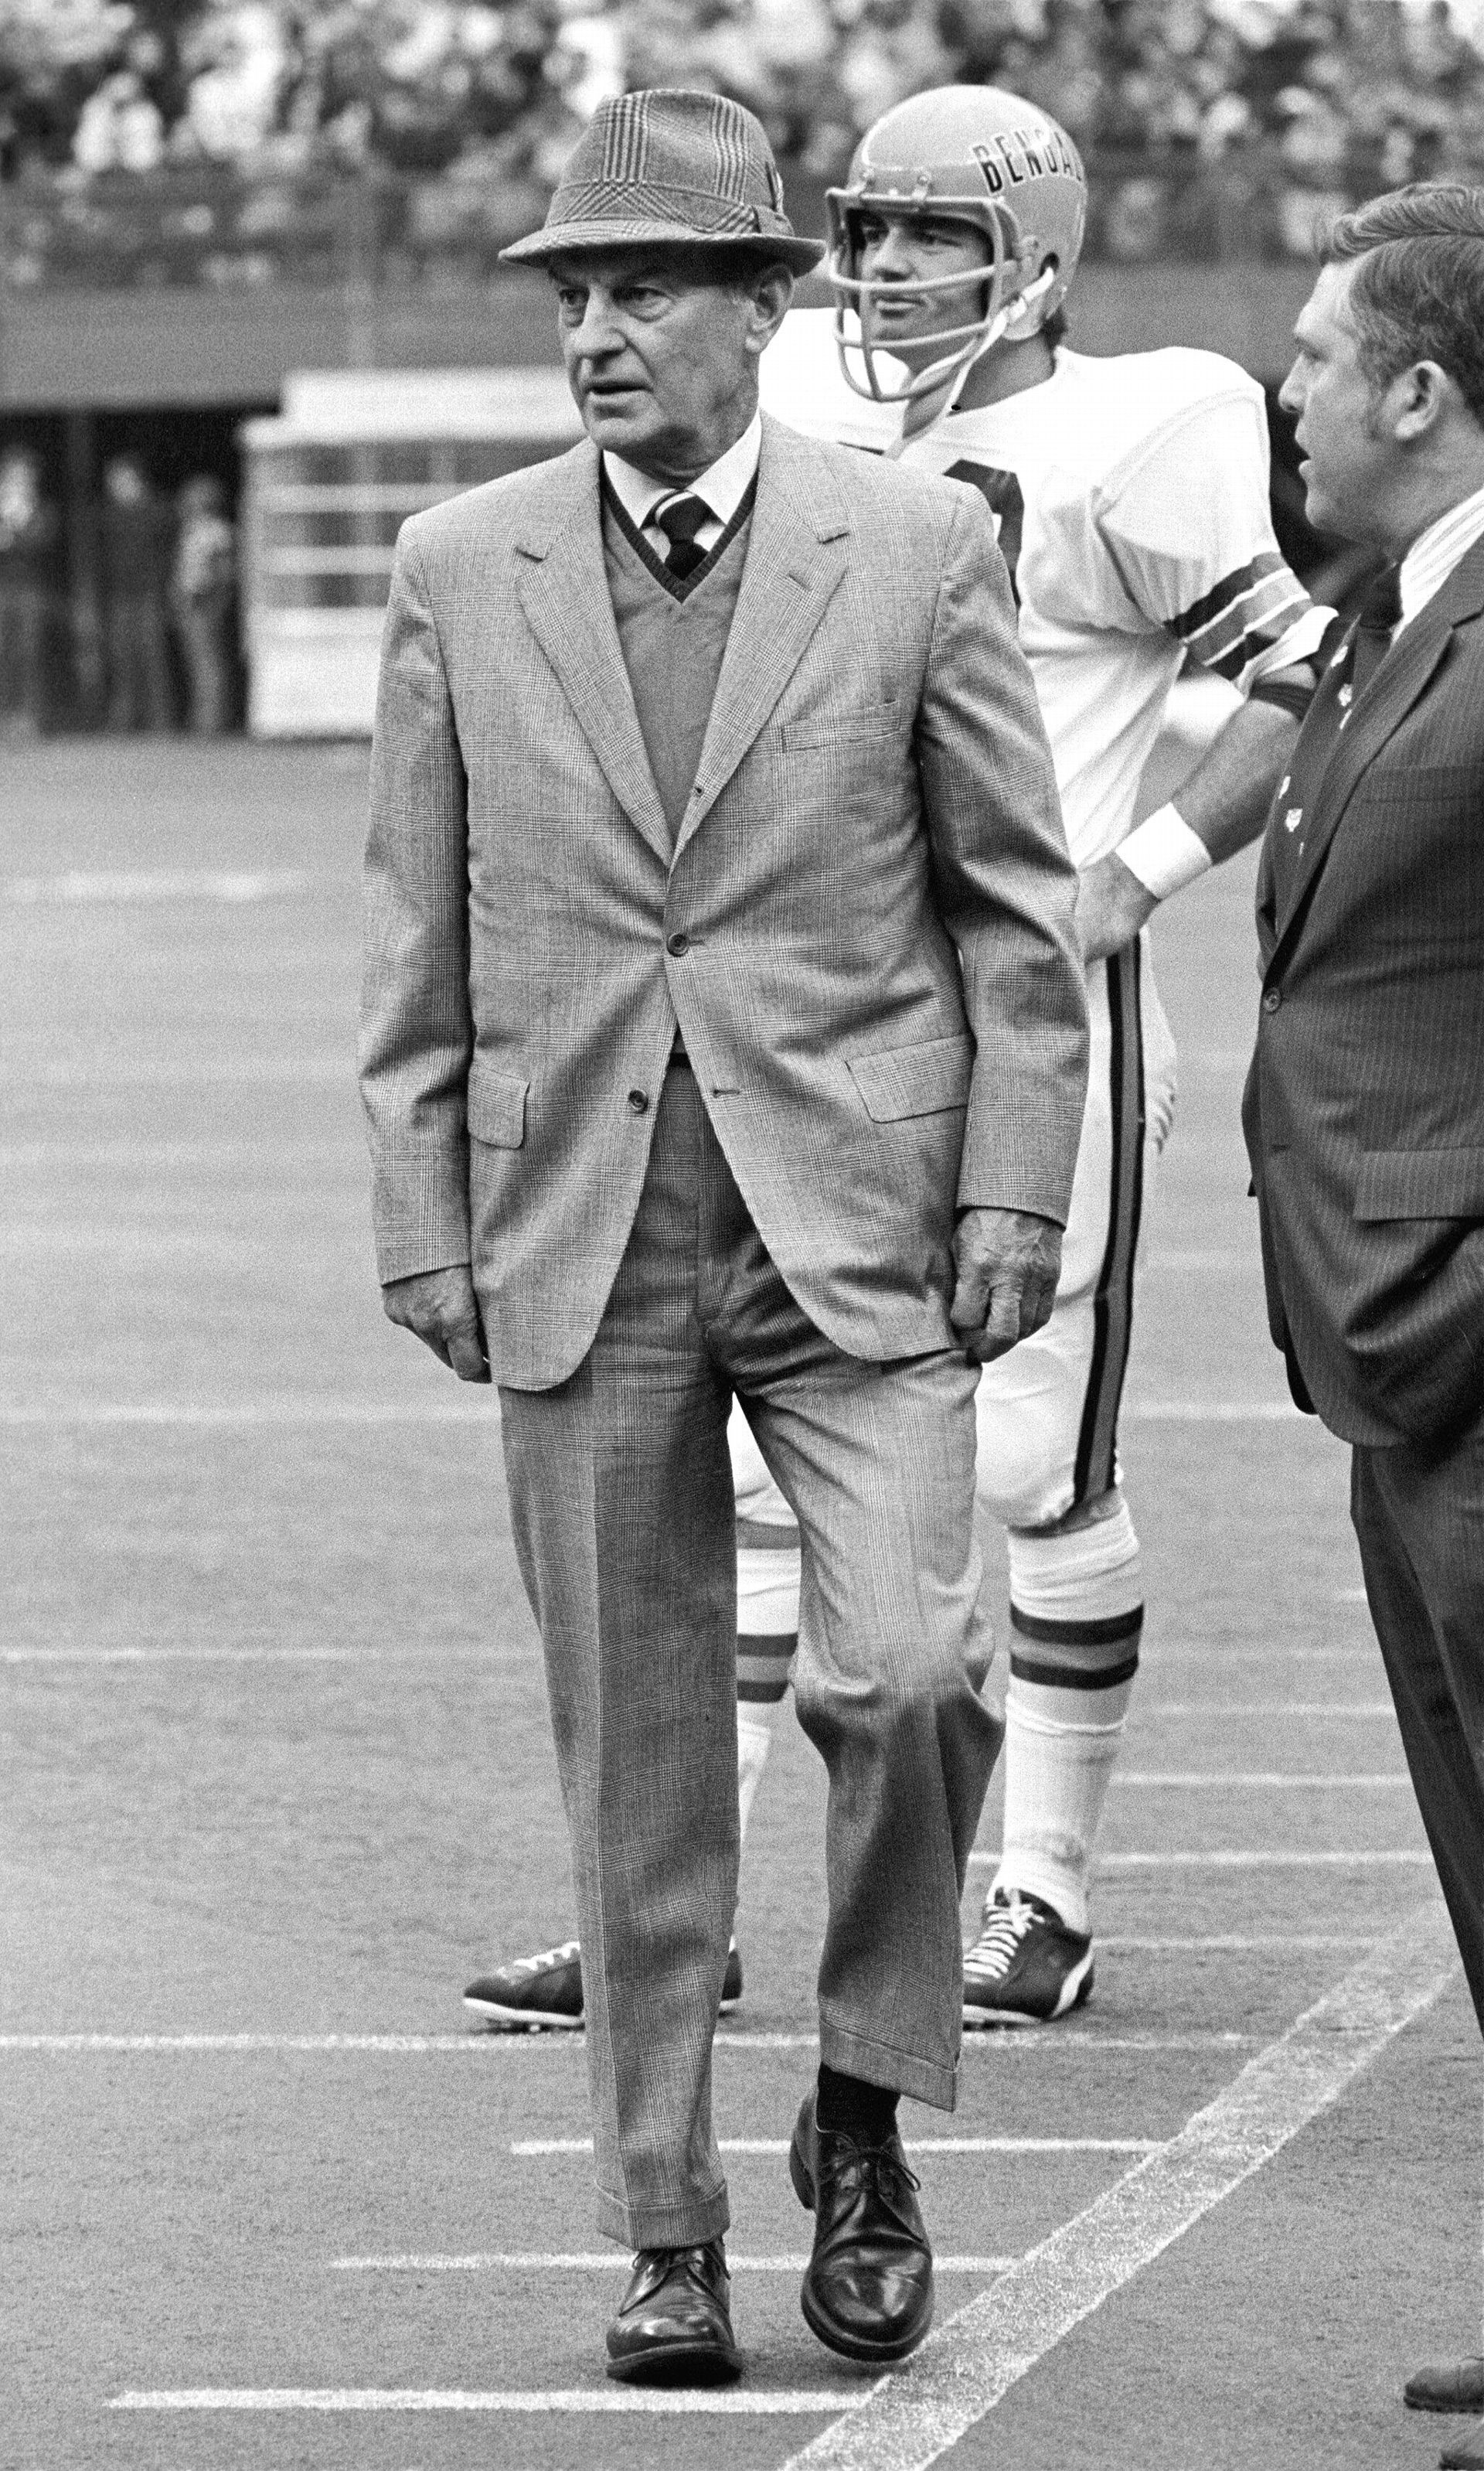 Paul Brown and the Cincinnati Bengals part of the AFL whether he liked it or not. It is a heritage the Bengals should be proud of.